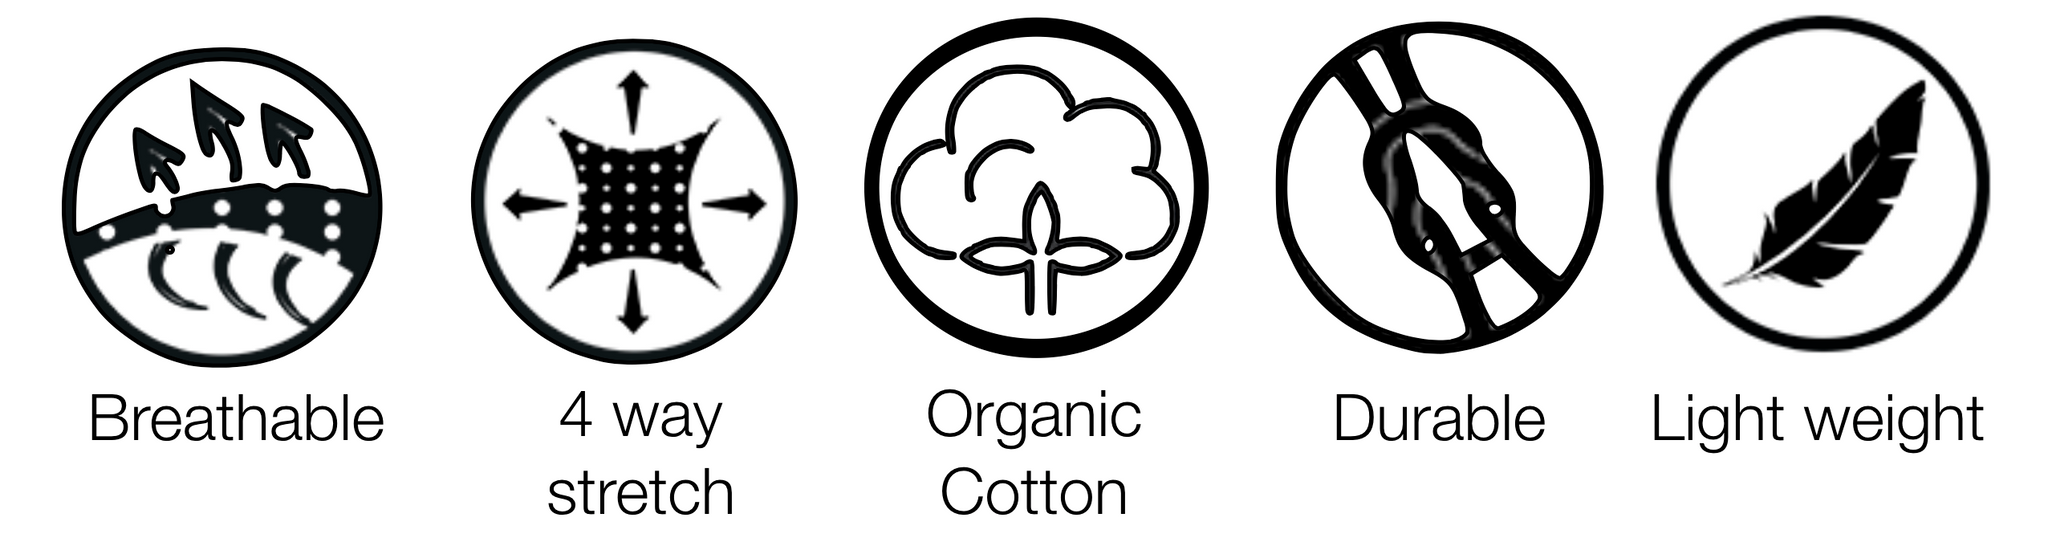 Nzo Organic cotton fabric